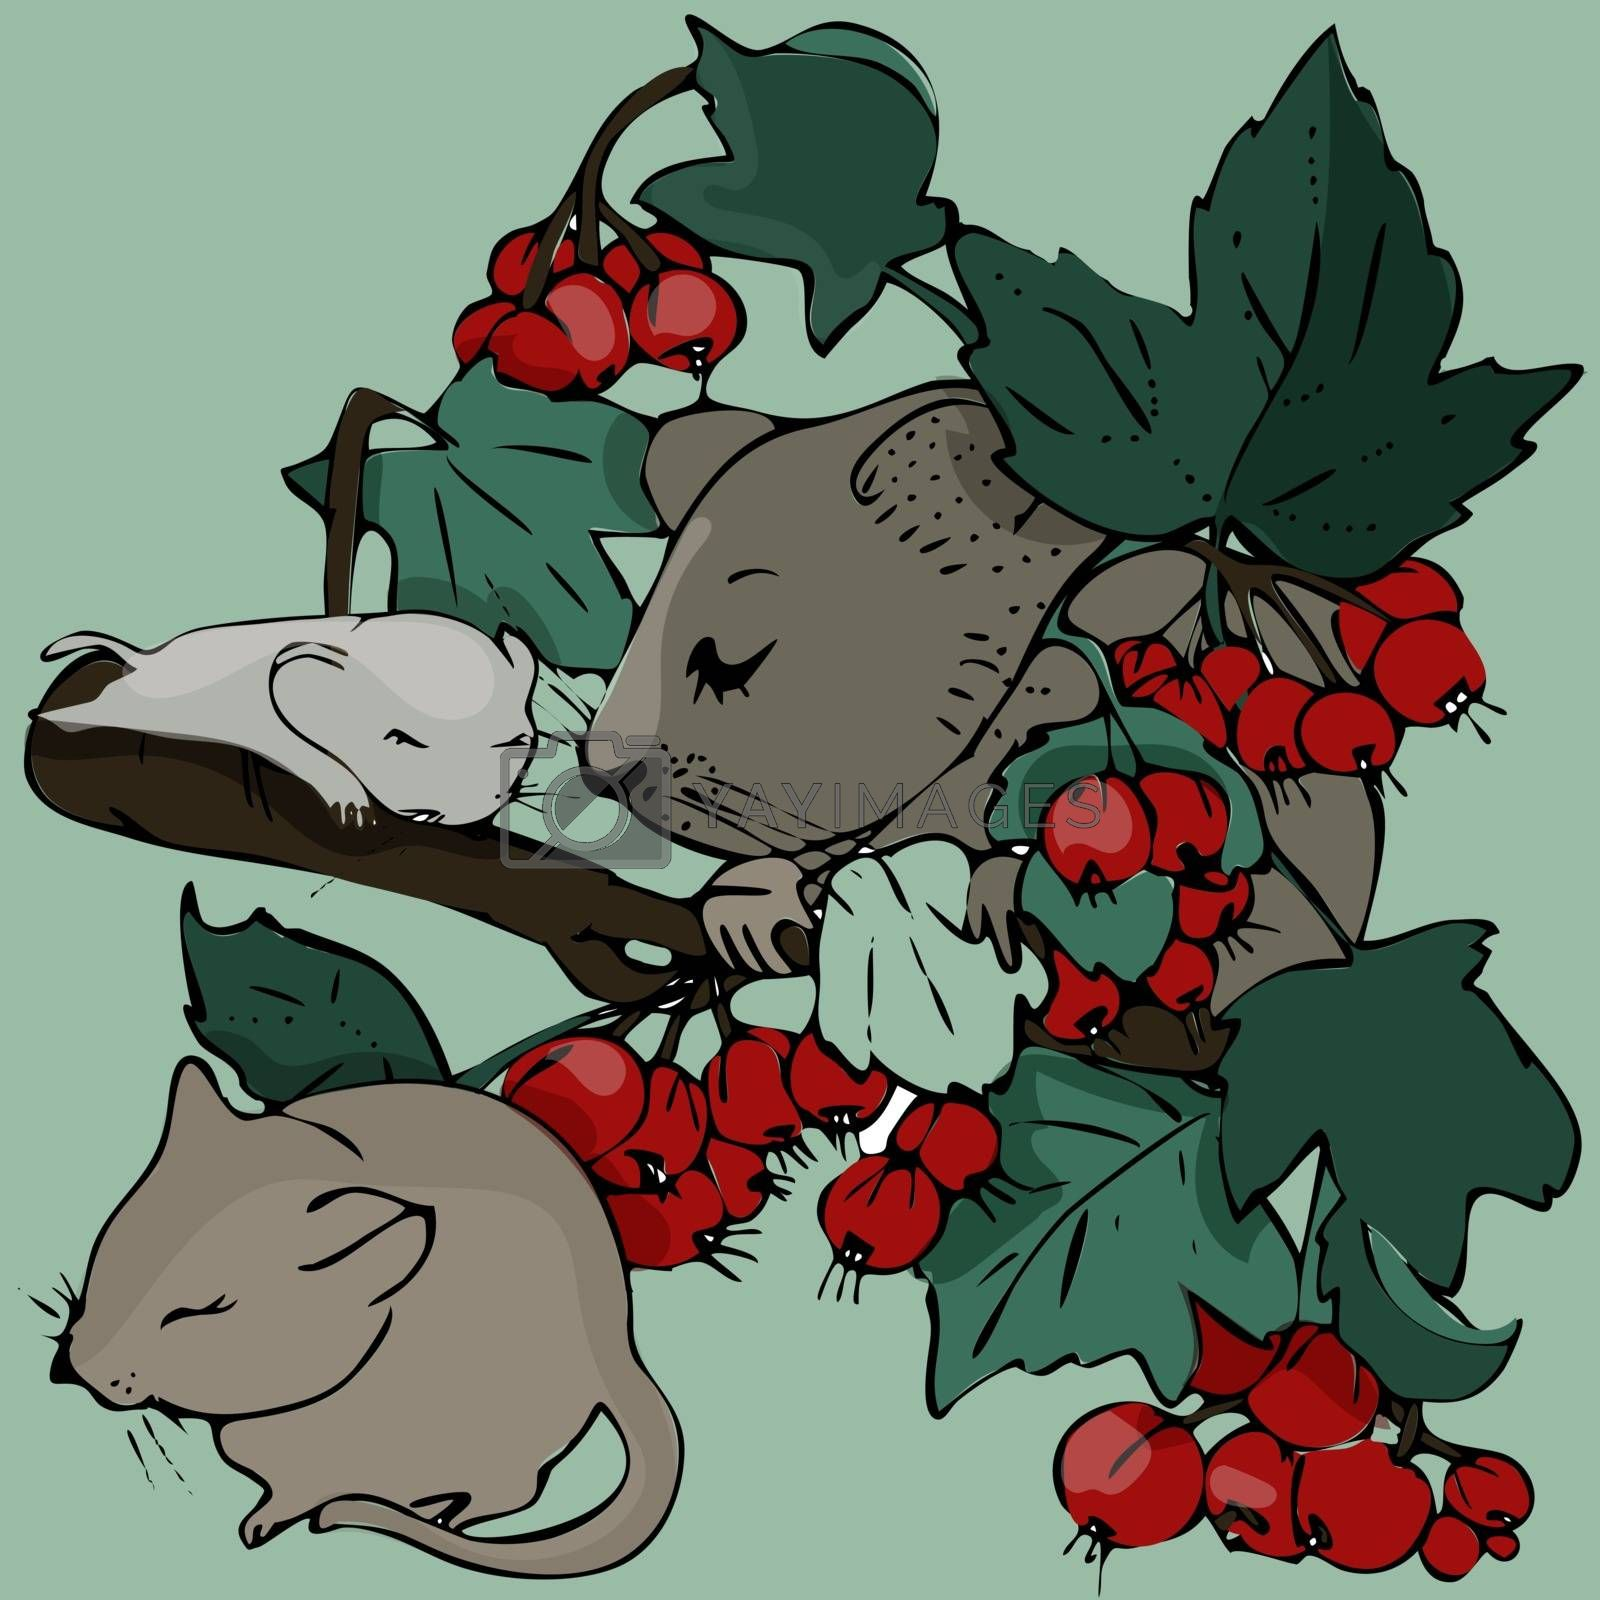 click on the currant Bush,the Mama mouse and two babies are among the twigs and berries,sleeping and basking in the sun.hand-drawn.